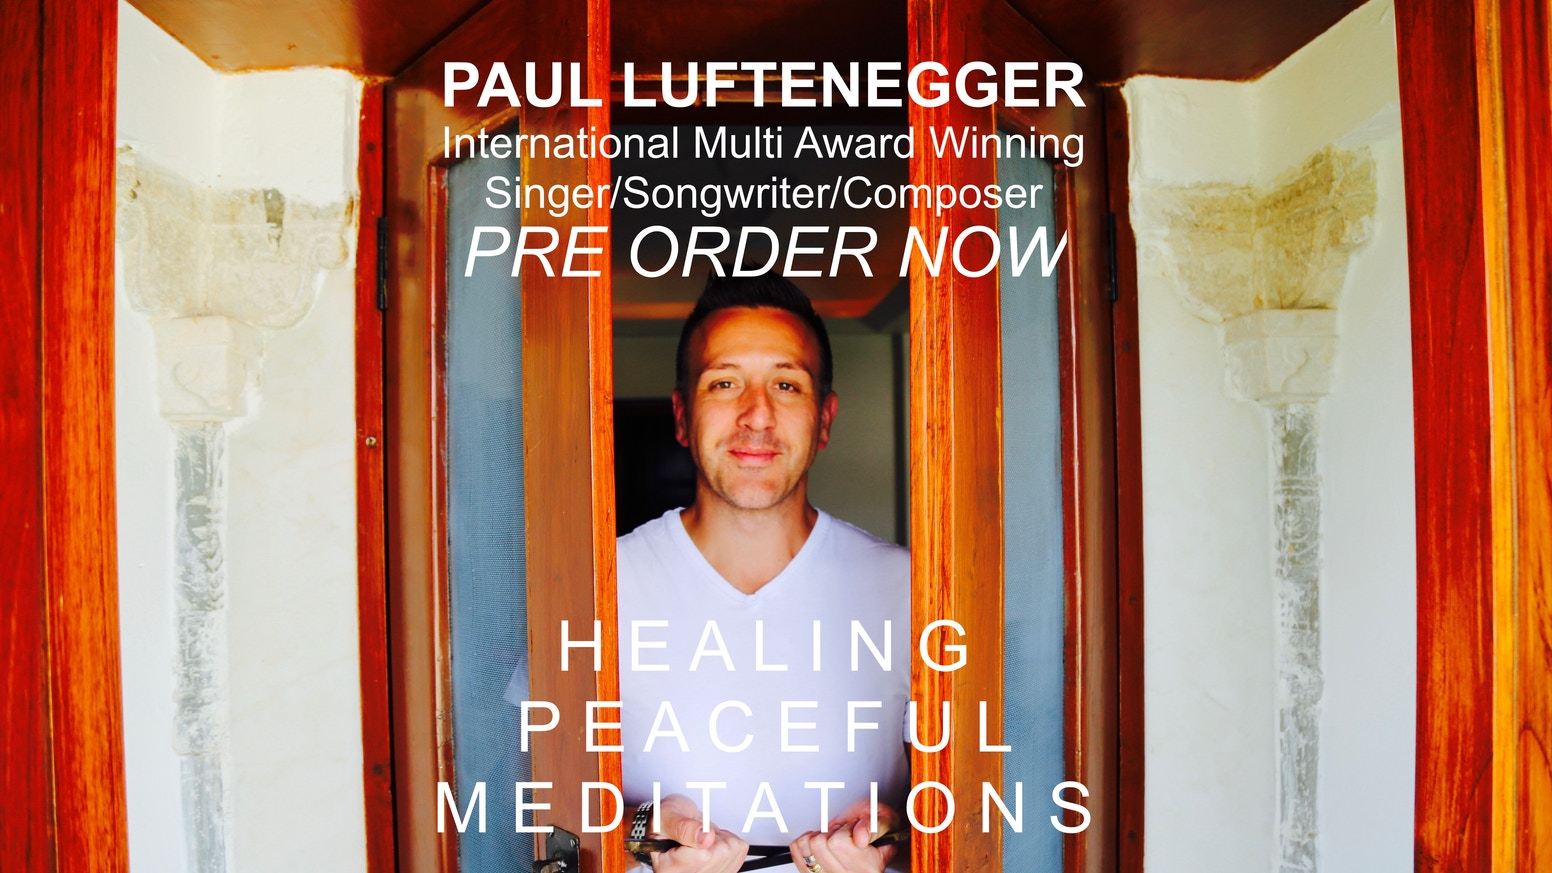 A NEW Healing Peaceful Meditation Album To Help The World